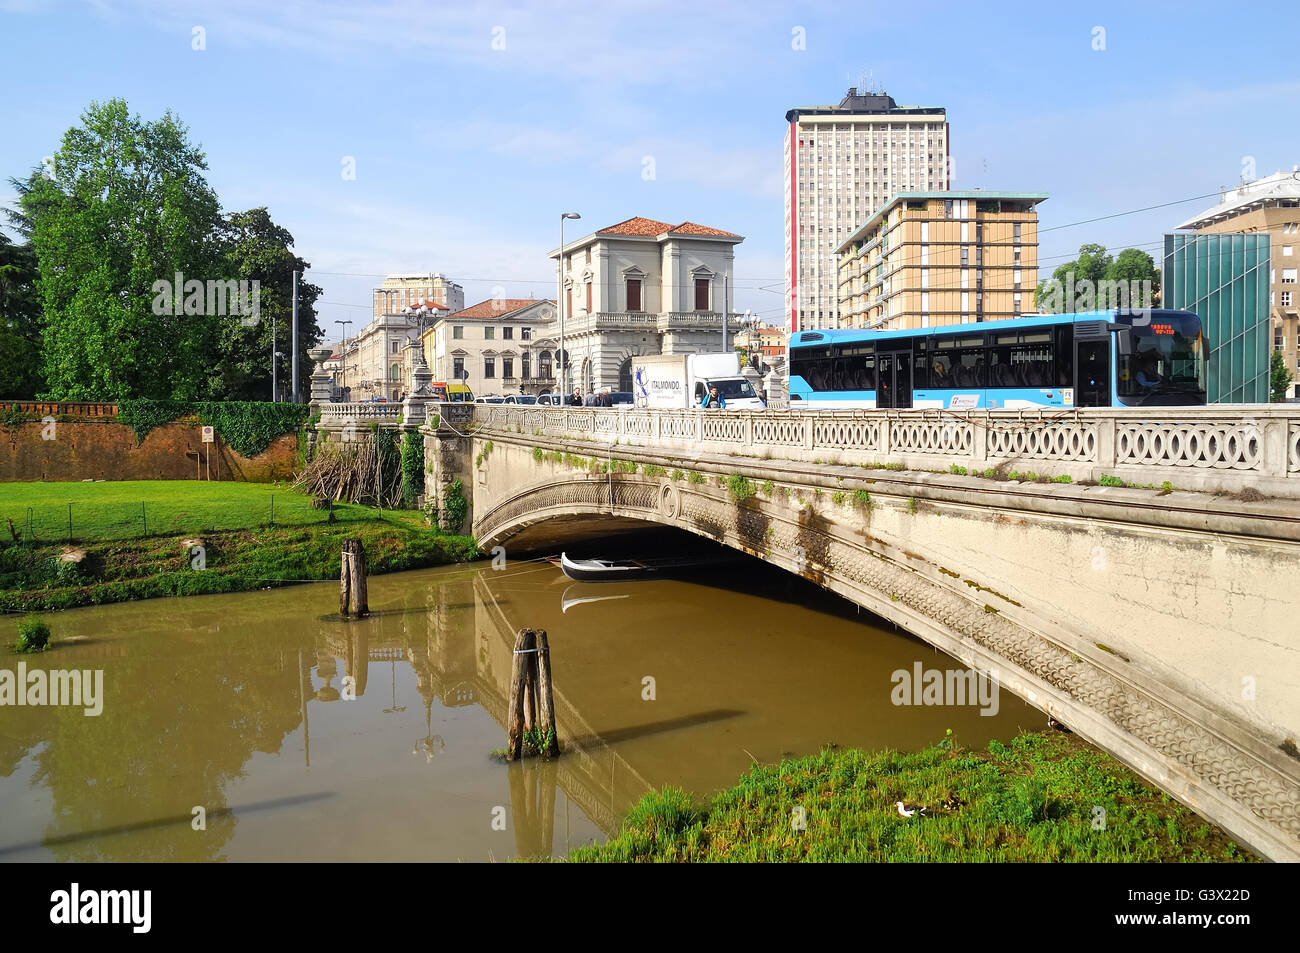 15d8315607 Padua, Italy. Corso Garibaldi street, the bridge on Piovego river. In the  background the residential area and the monument